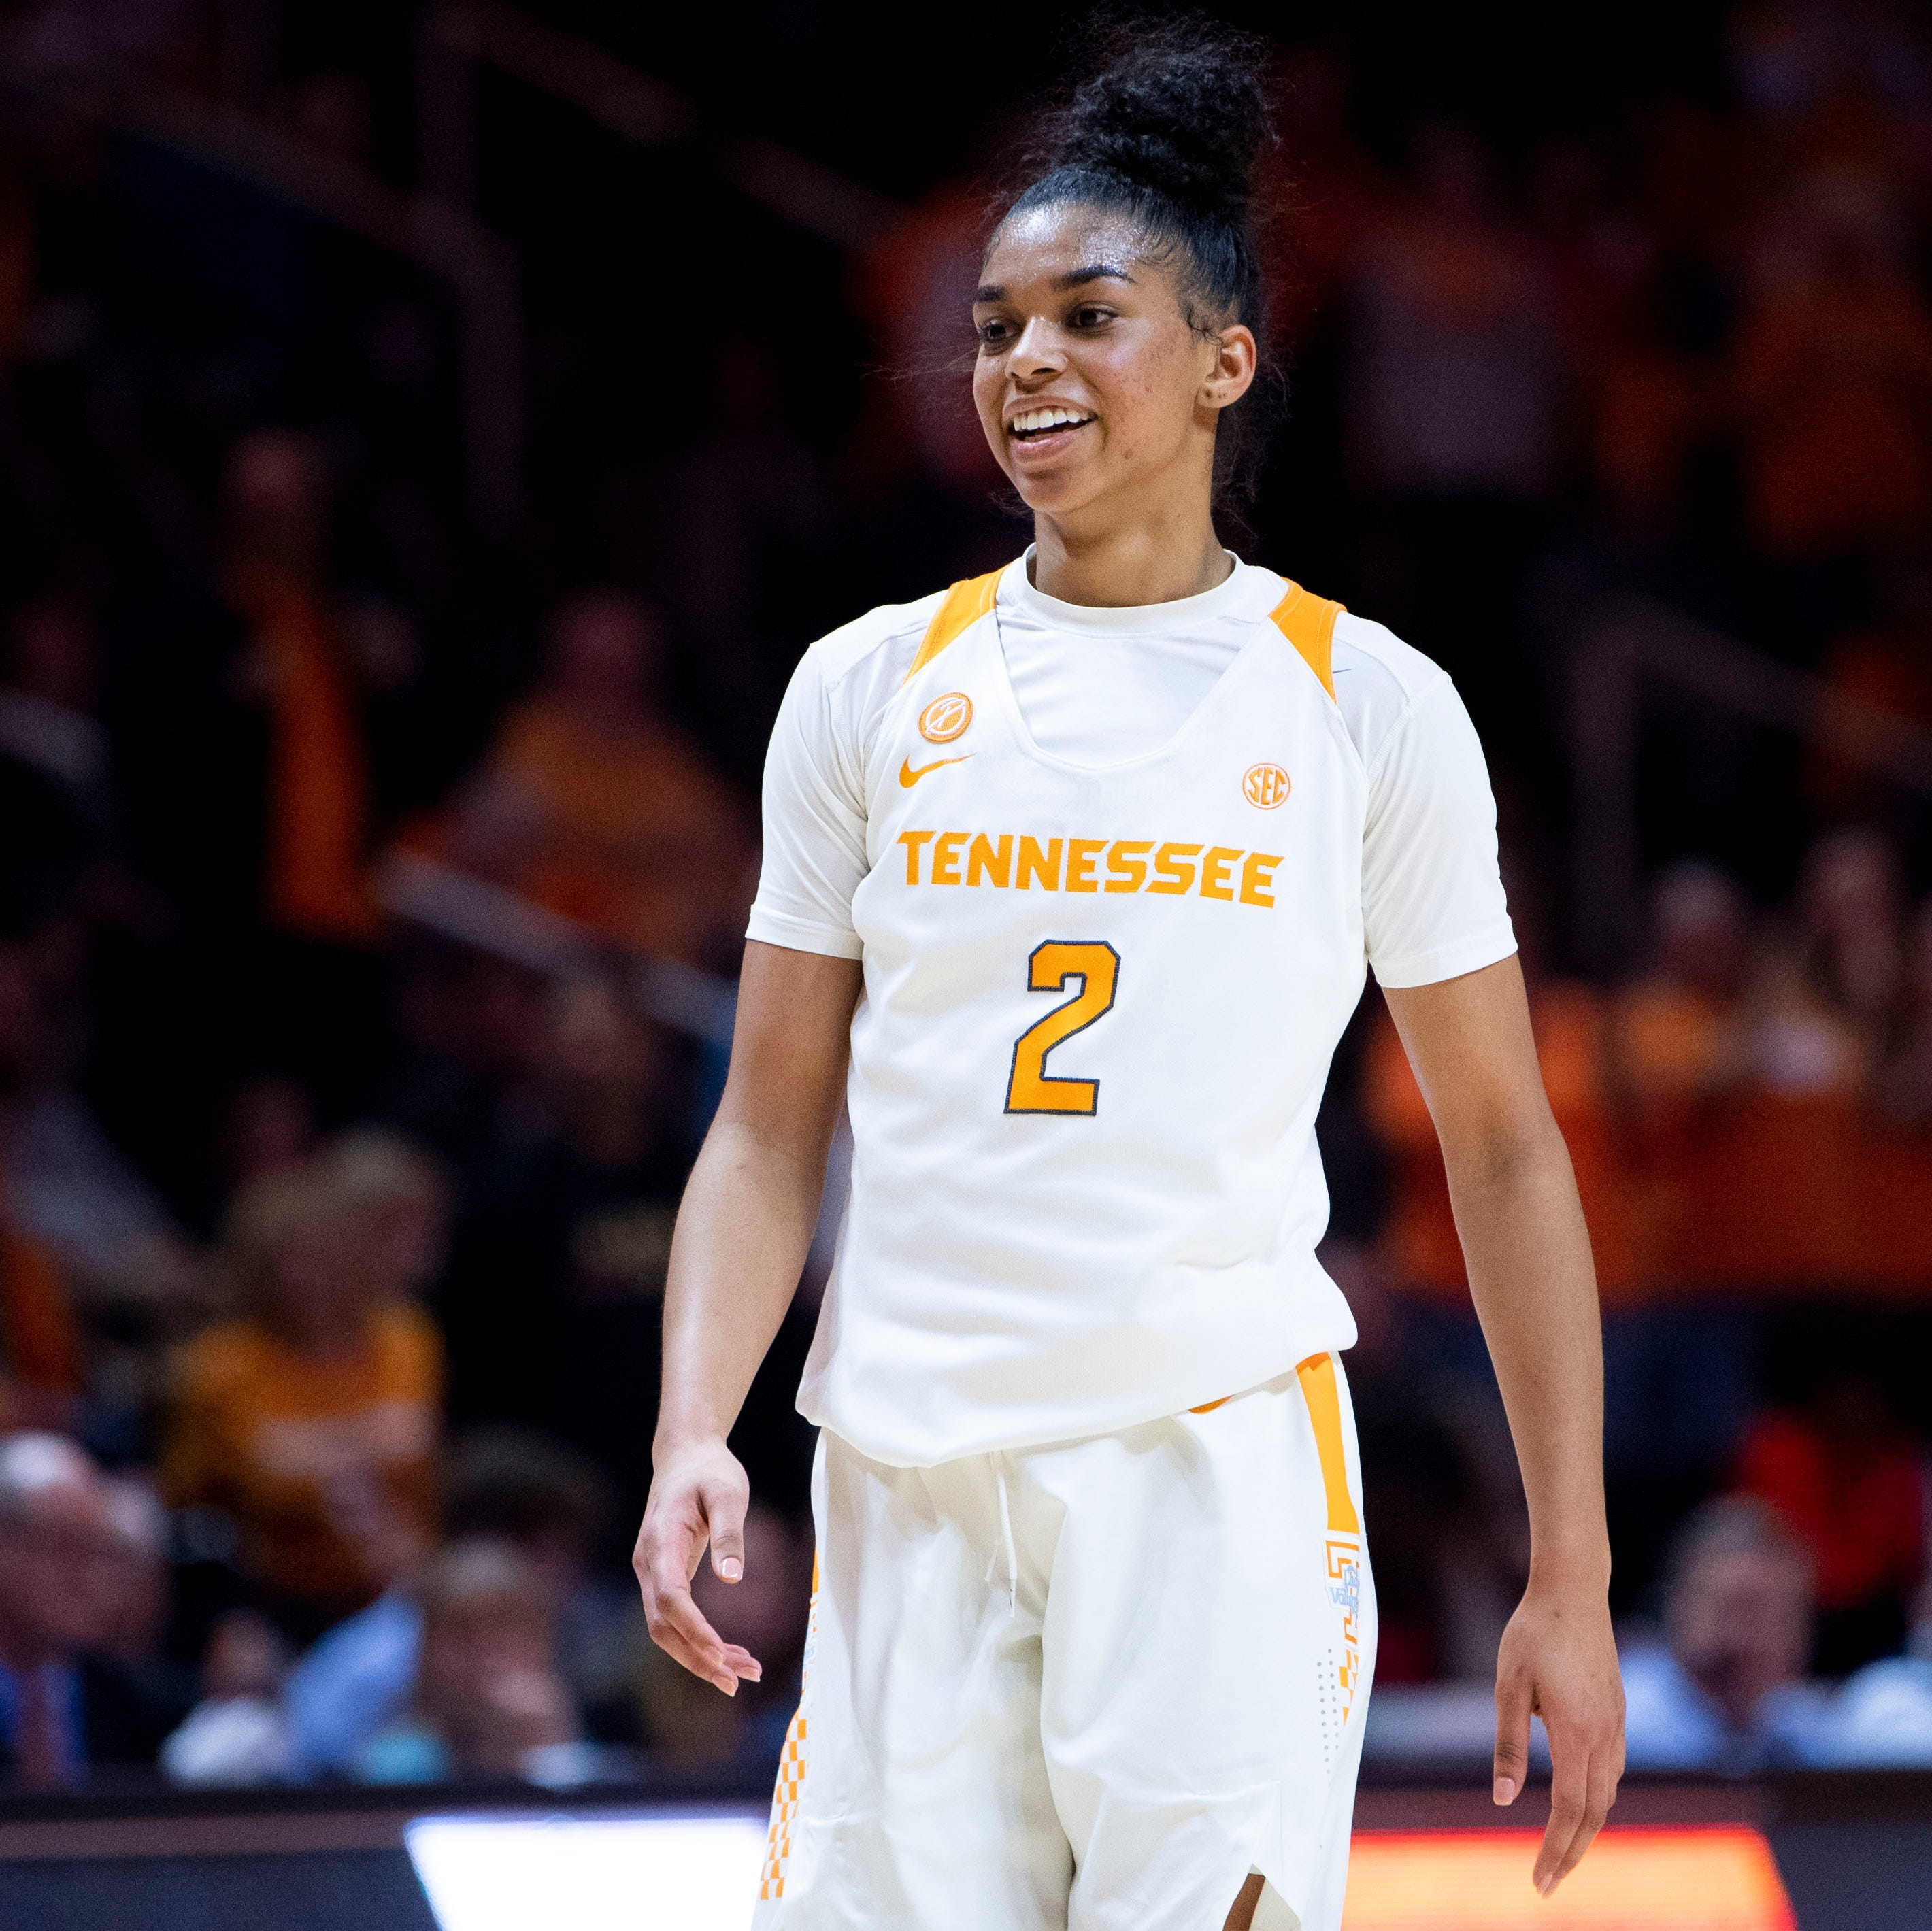 Evina Westbrook tweets farewell and thank you to Lady Vols